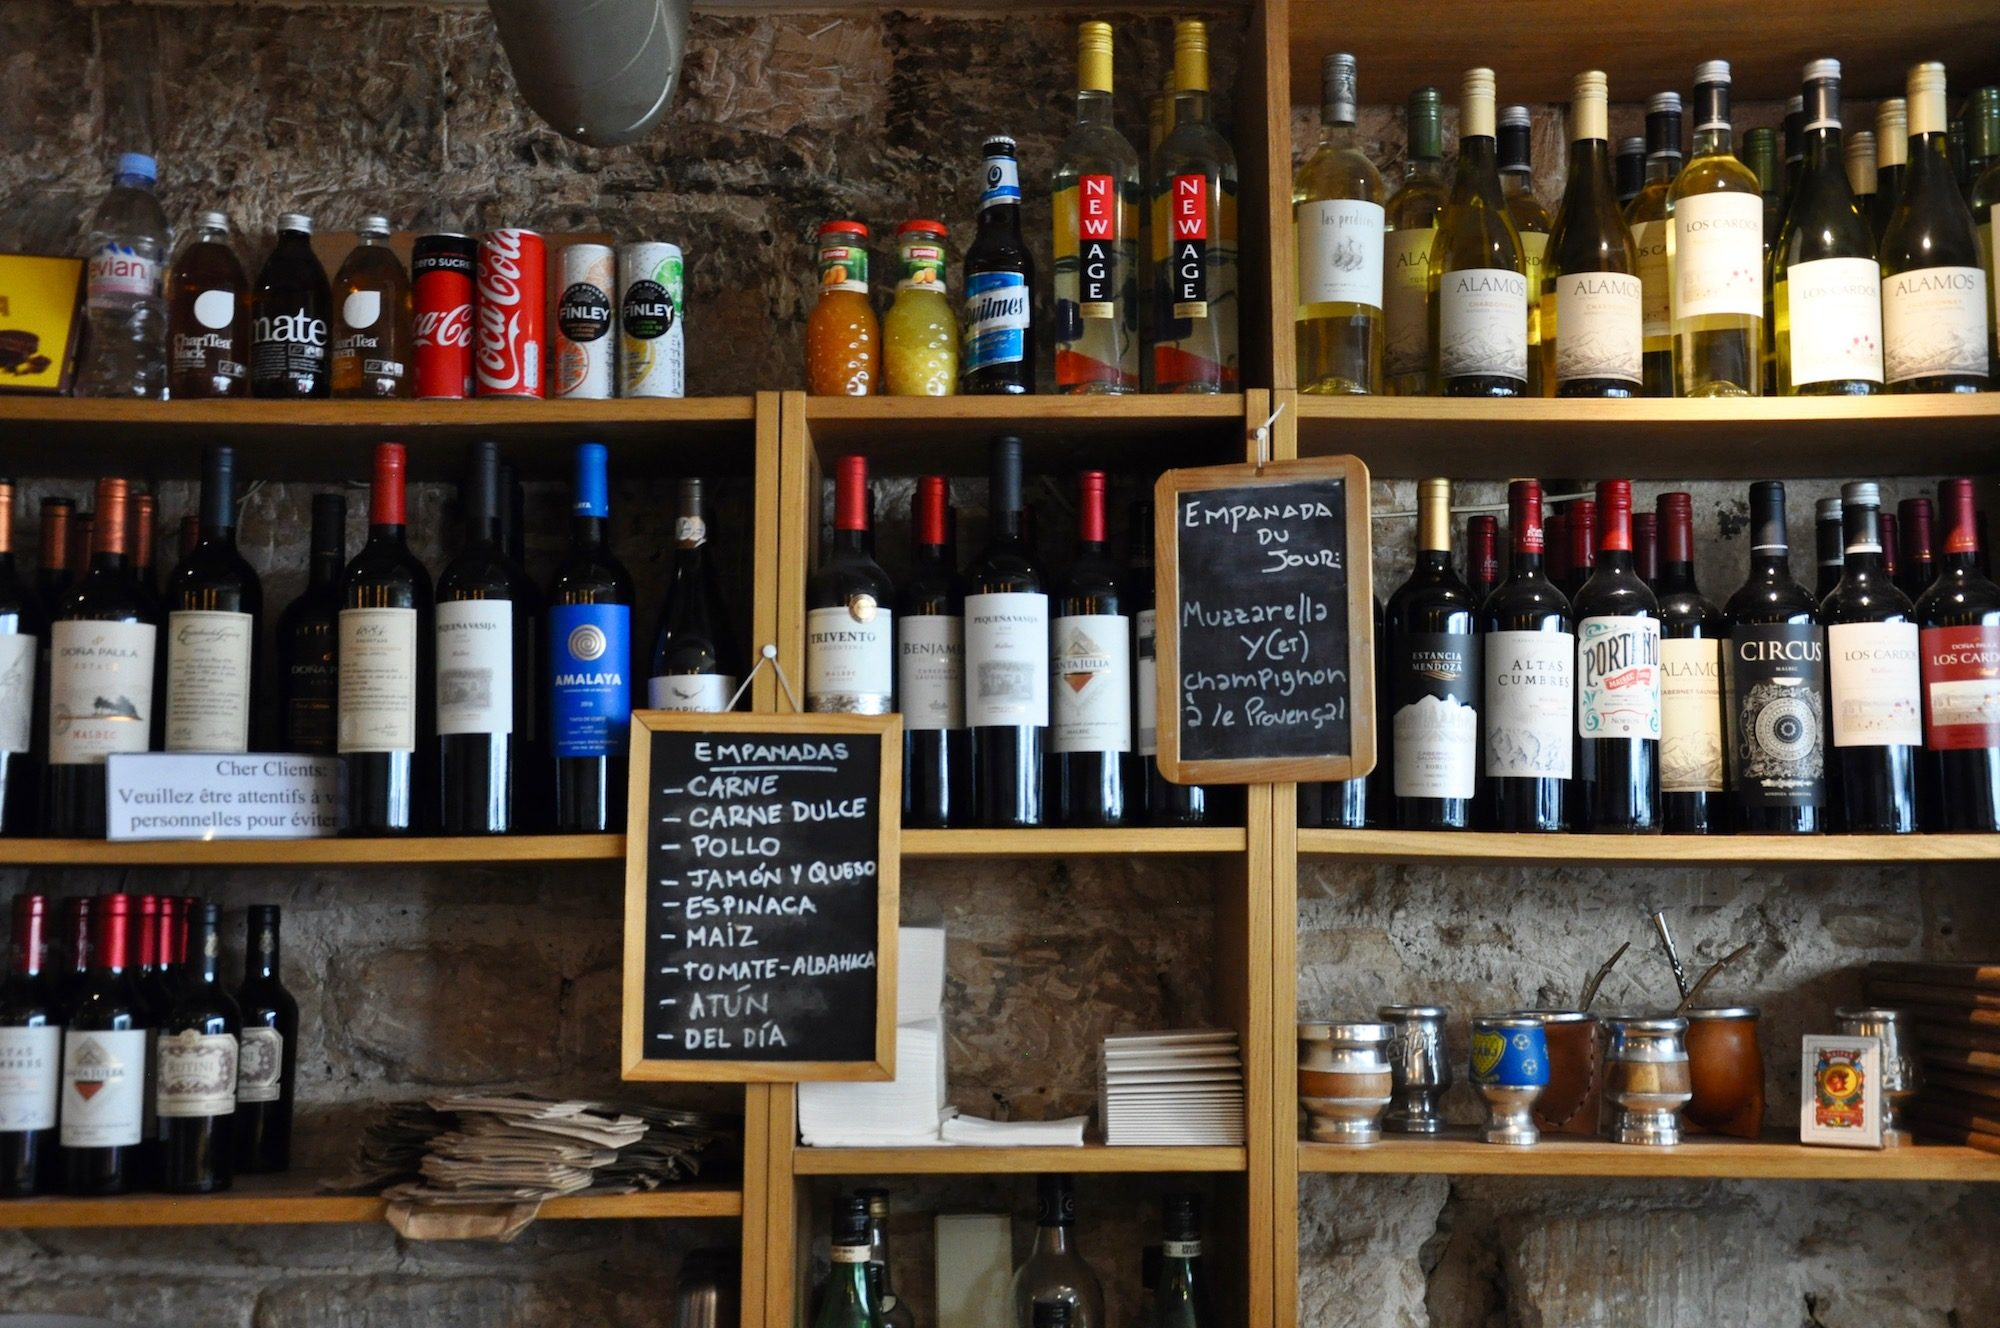 La Portena is one of HiP Paris Blog's favorite spots to drink wine in Paris's Montmartre and enjoy international cuisine.